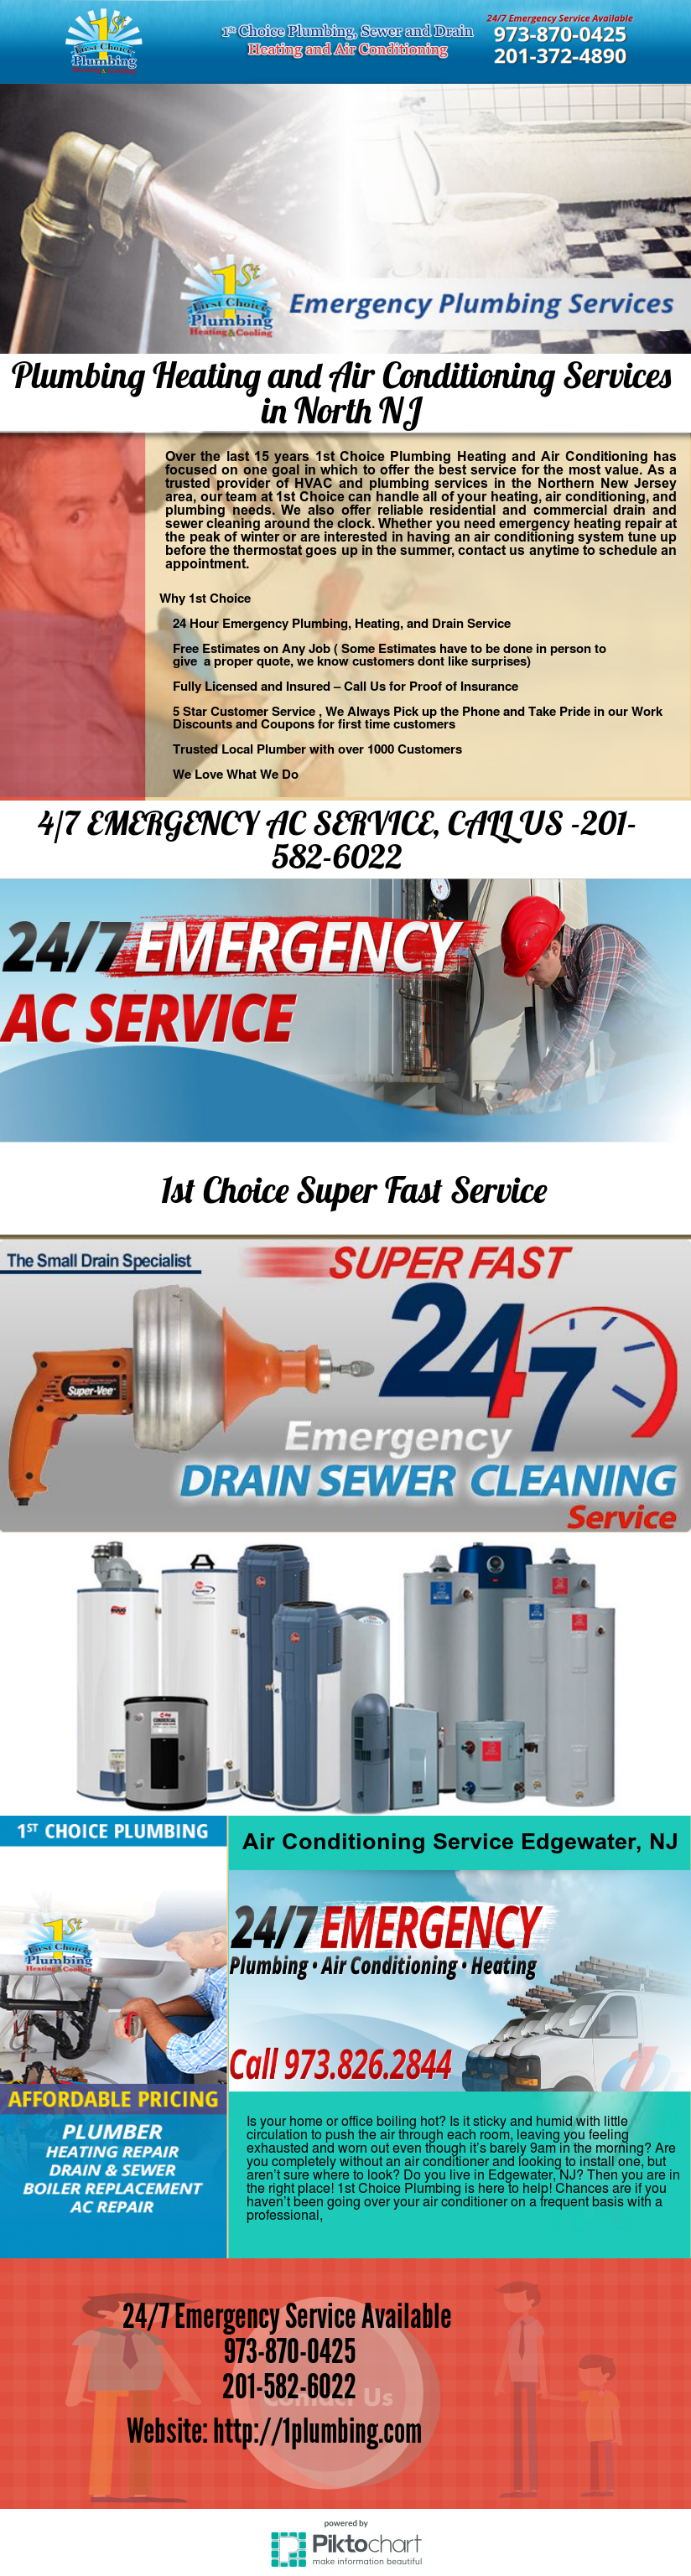 Air Conditioning Service Edgewater Nj 1st Choice Air Conditioning Services Plumbing Emergency Heating And Air